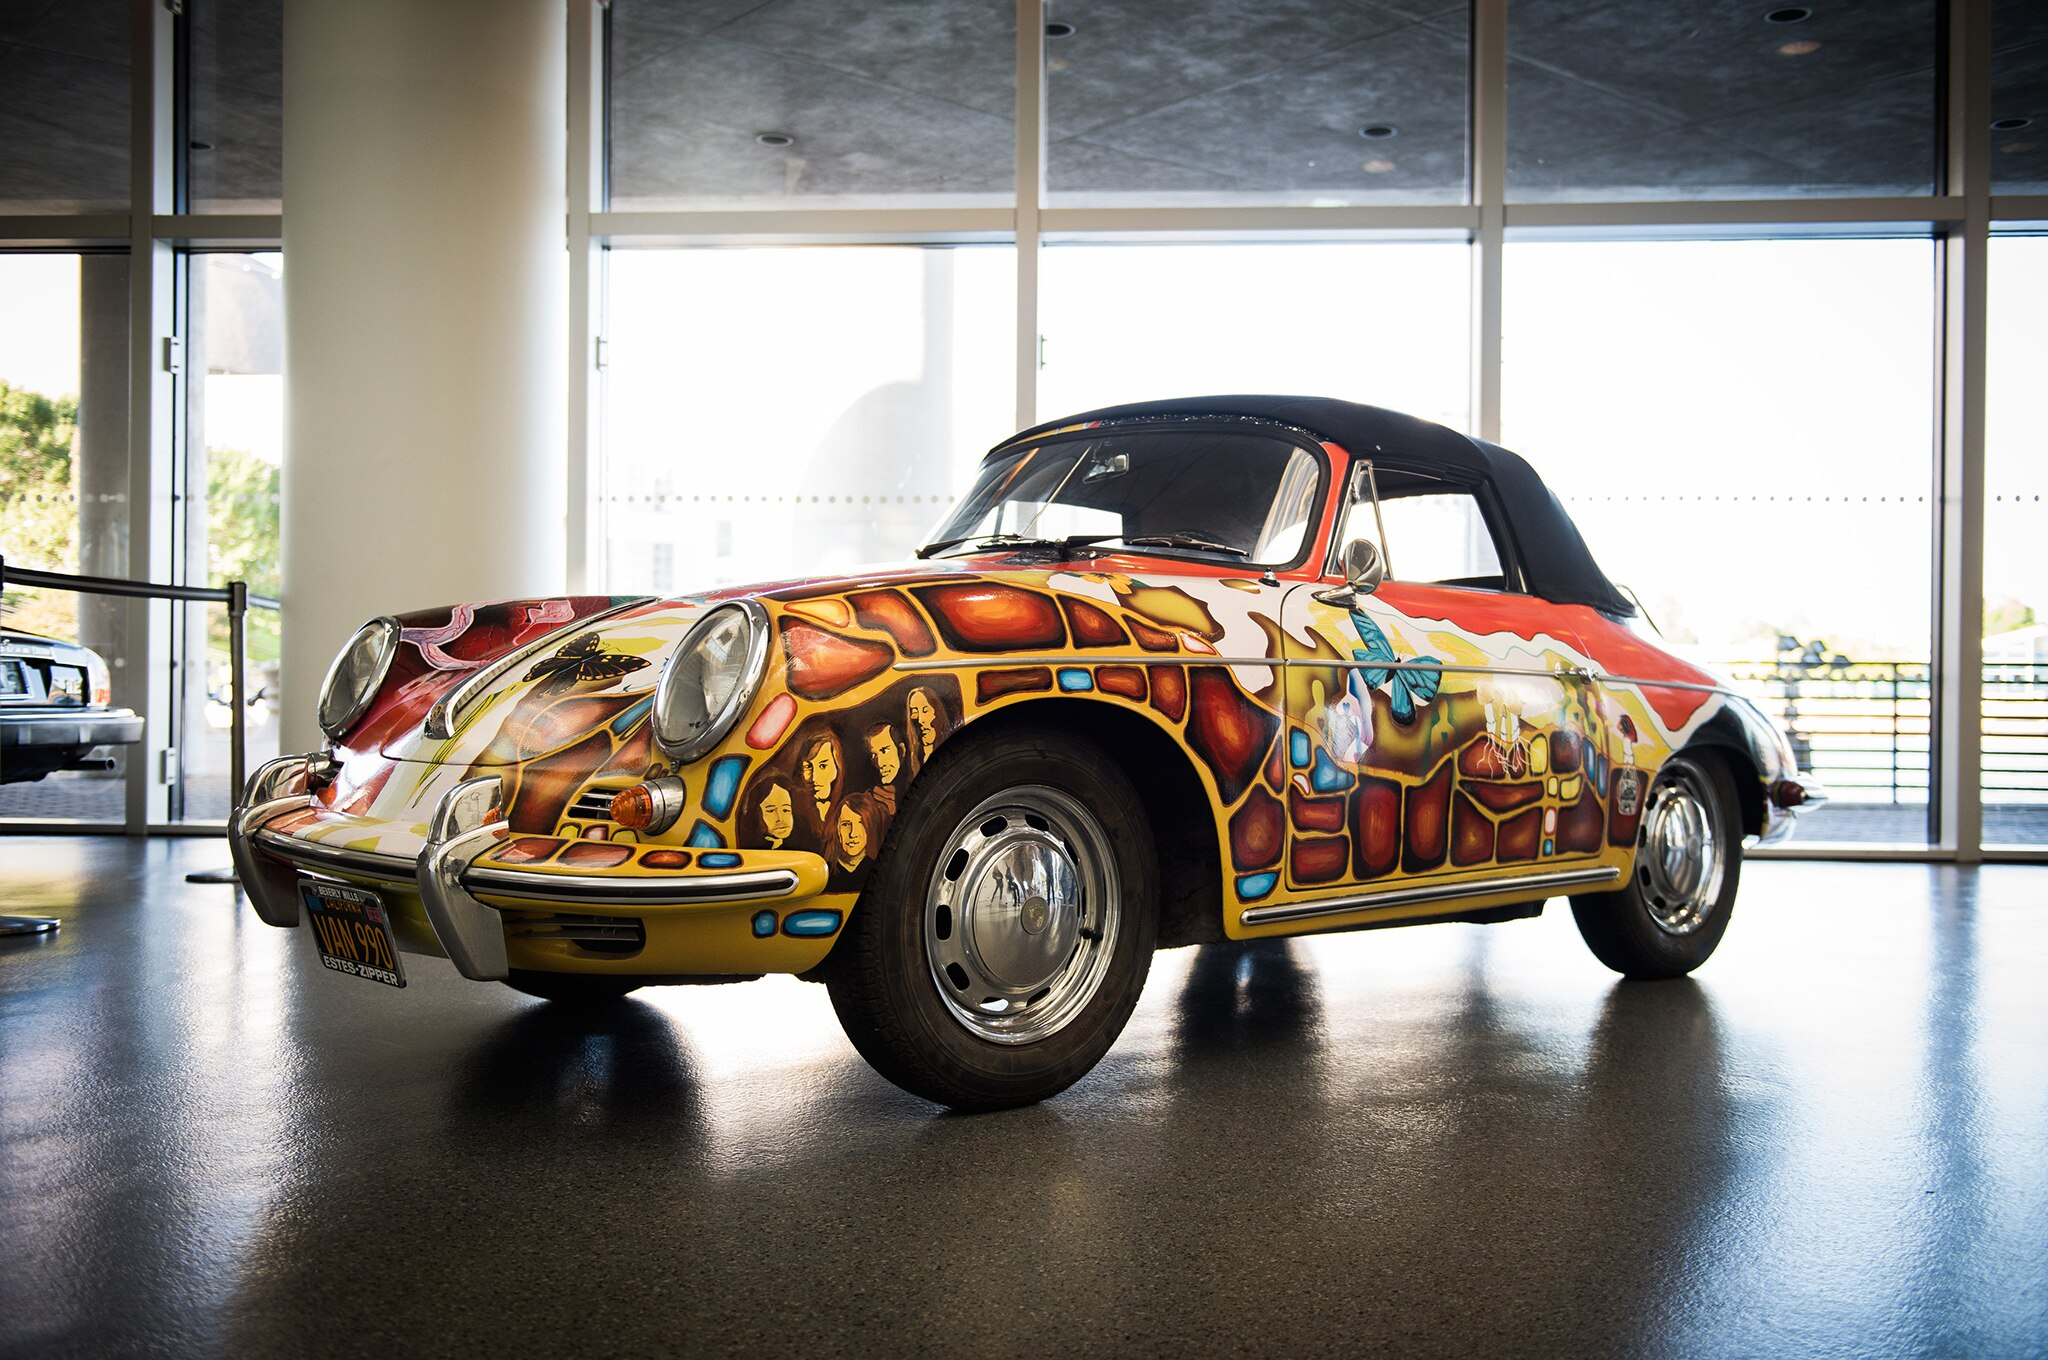 Car Auctions Ny >> Janis Joplin's Psychedelic 1964 Porsche 356 Sells for $1 ...